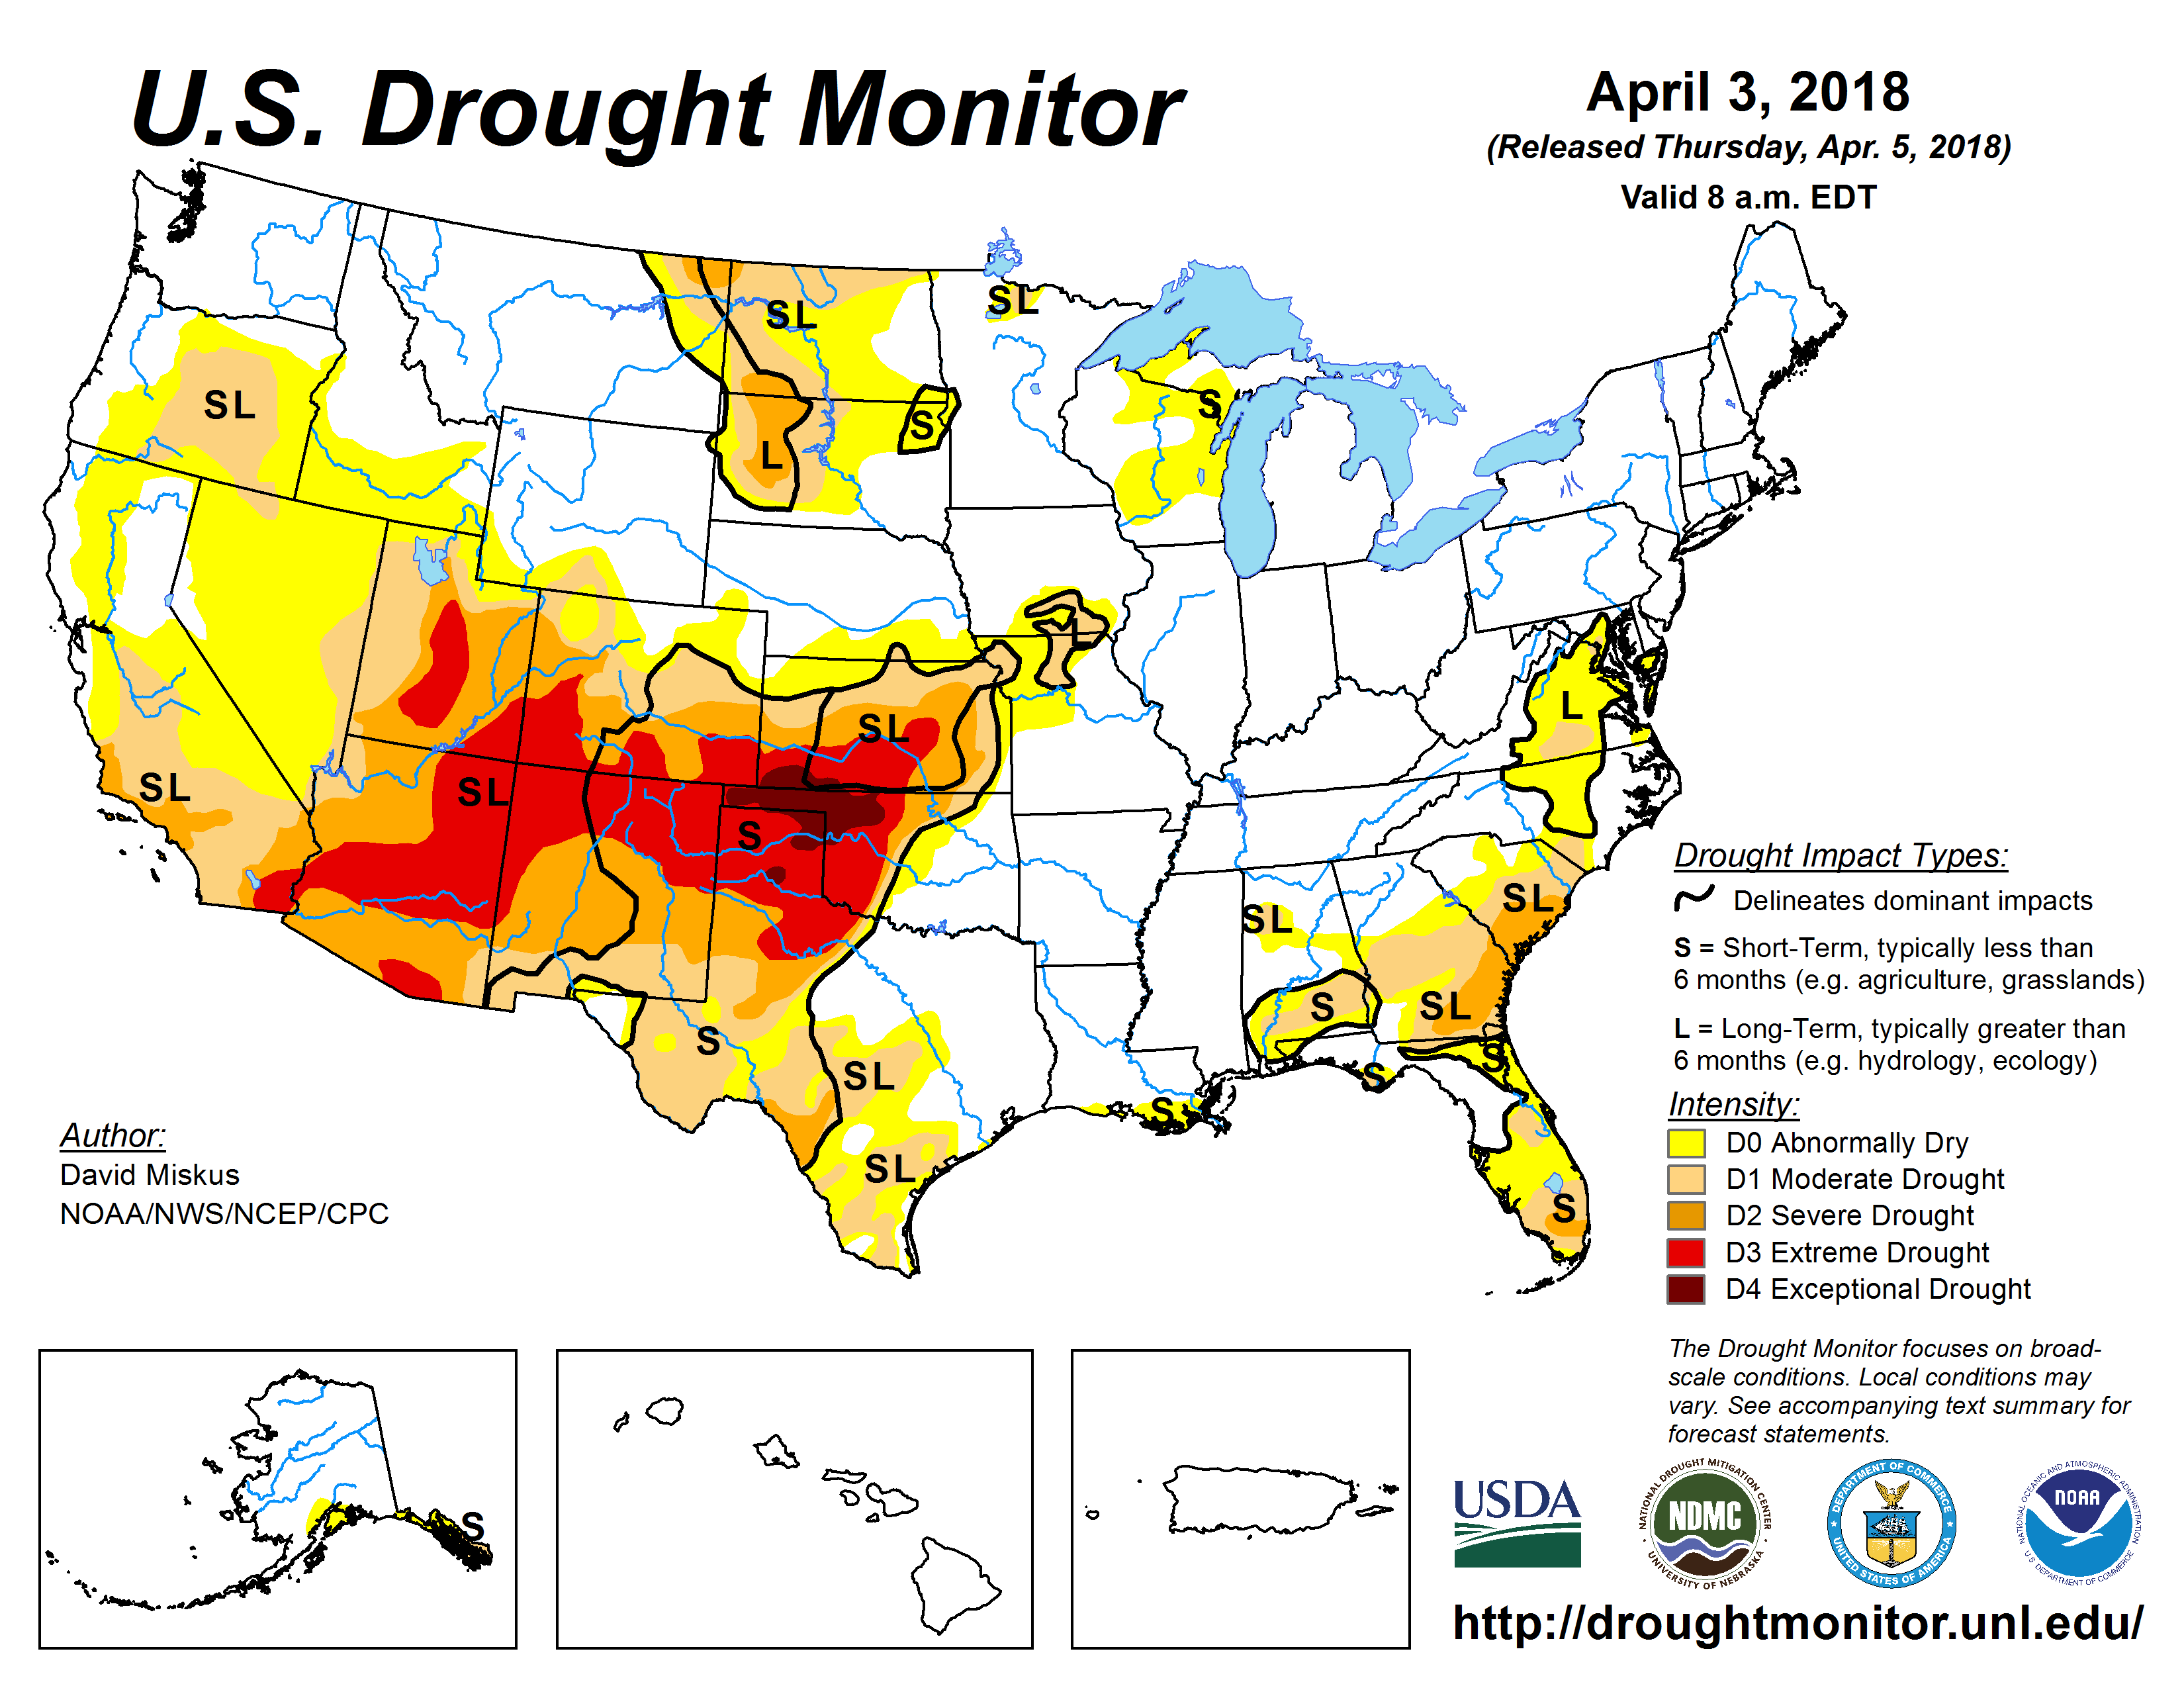 The U.S. Drought Monitor drought map valid April 3, 2018